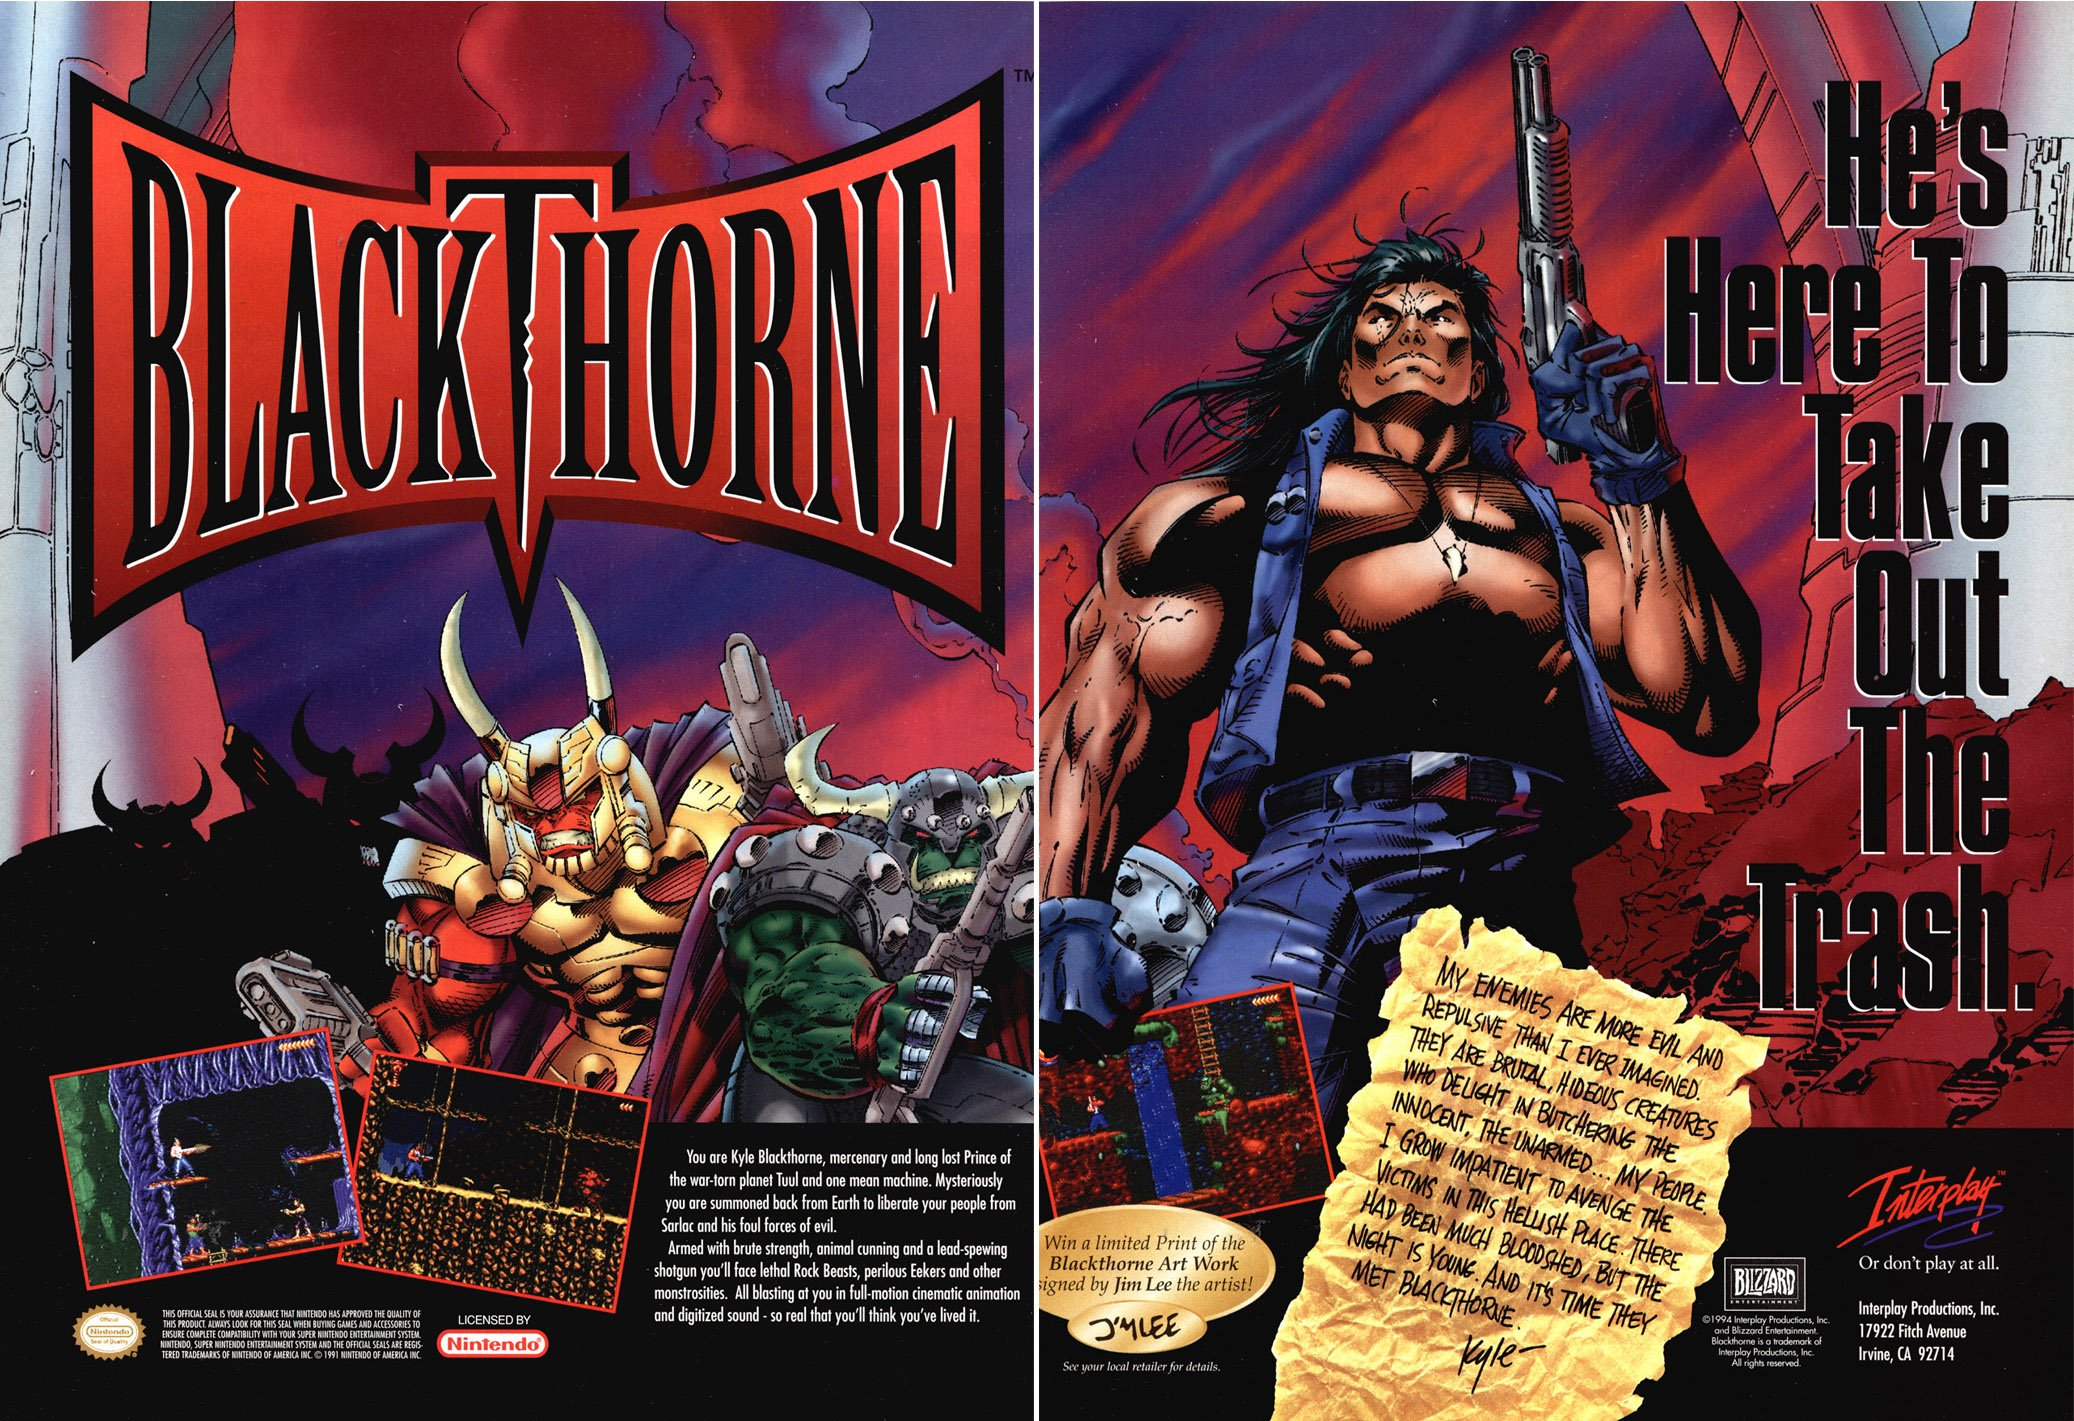 Blackthorne Nintendo Switch